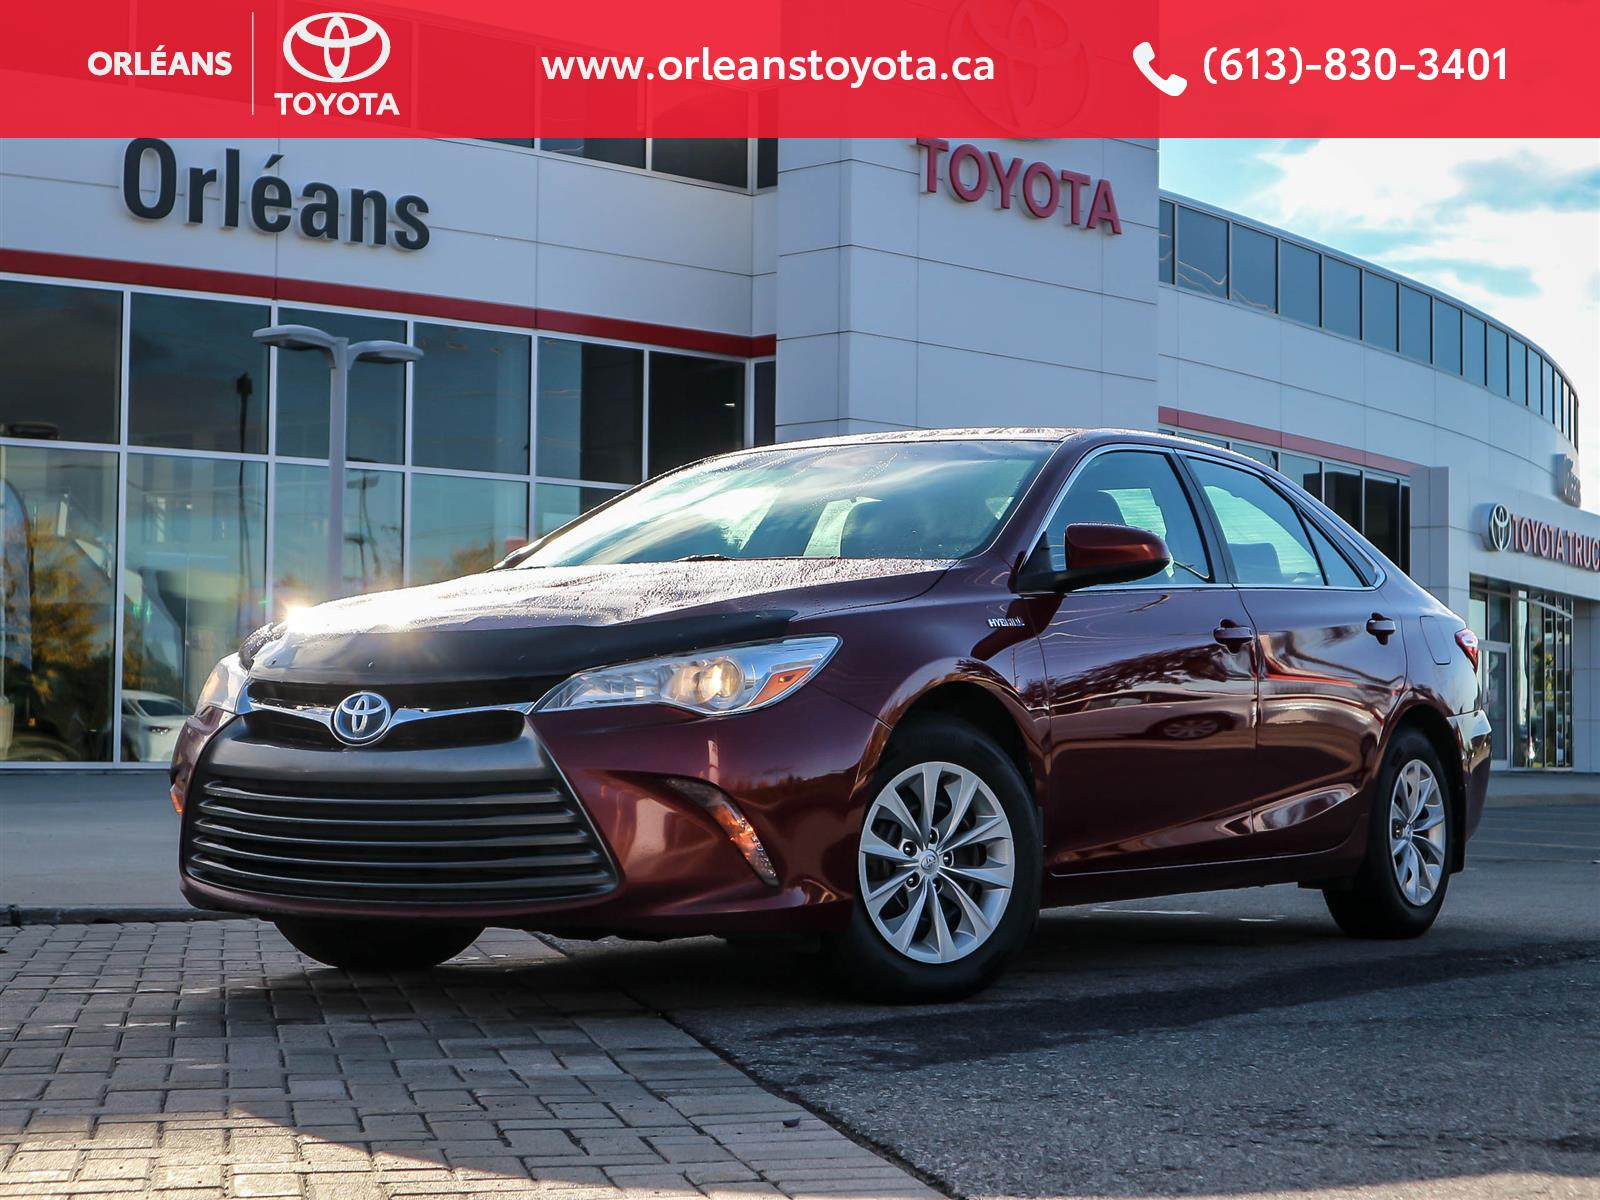 2017 Toyota Camry Hybrid at Orleans Toyota